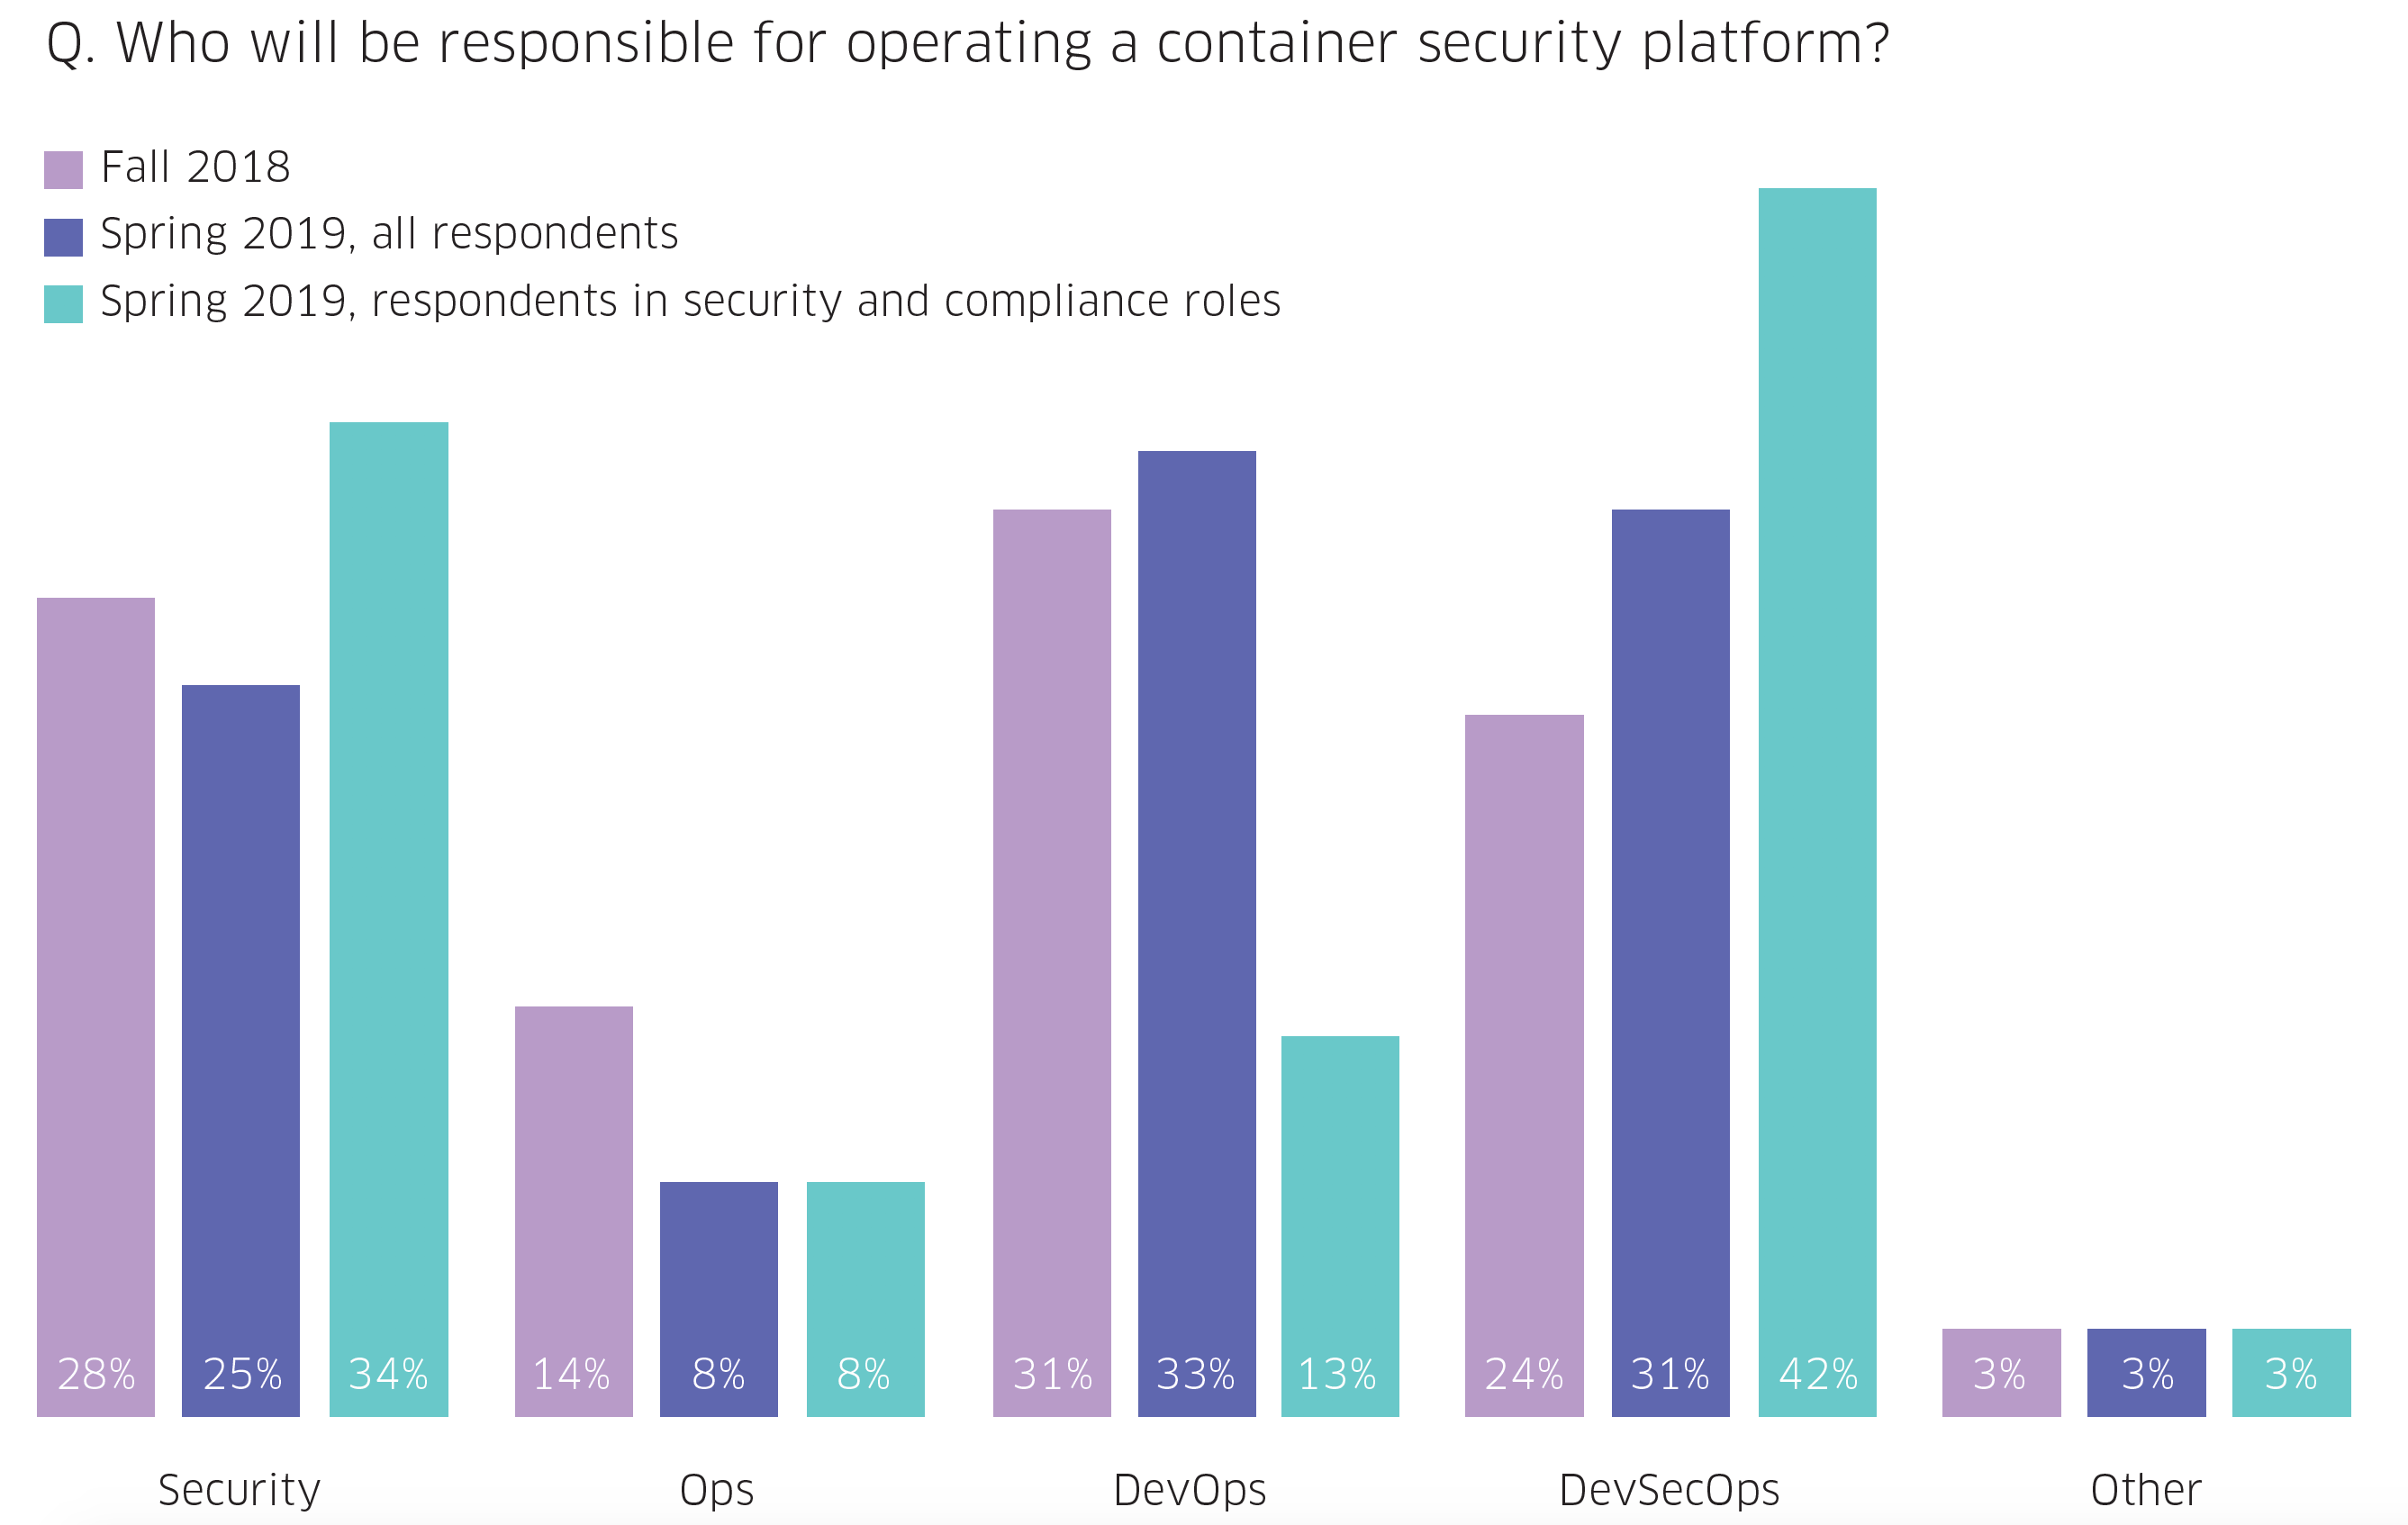 Container operation responsibility